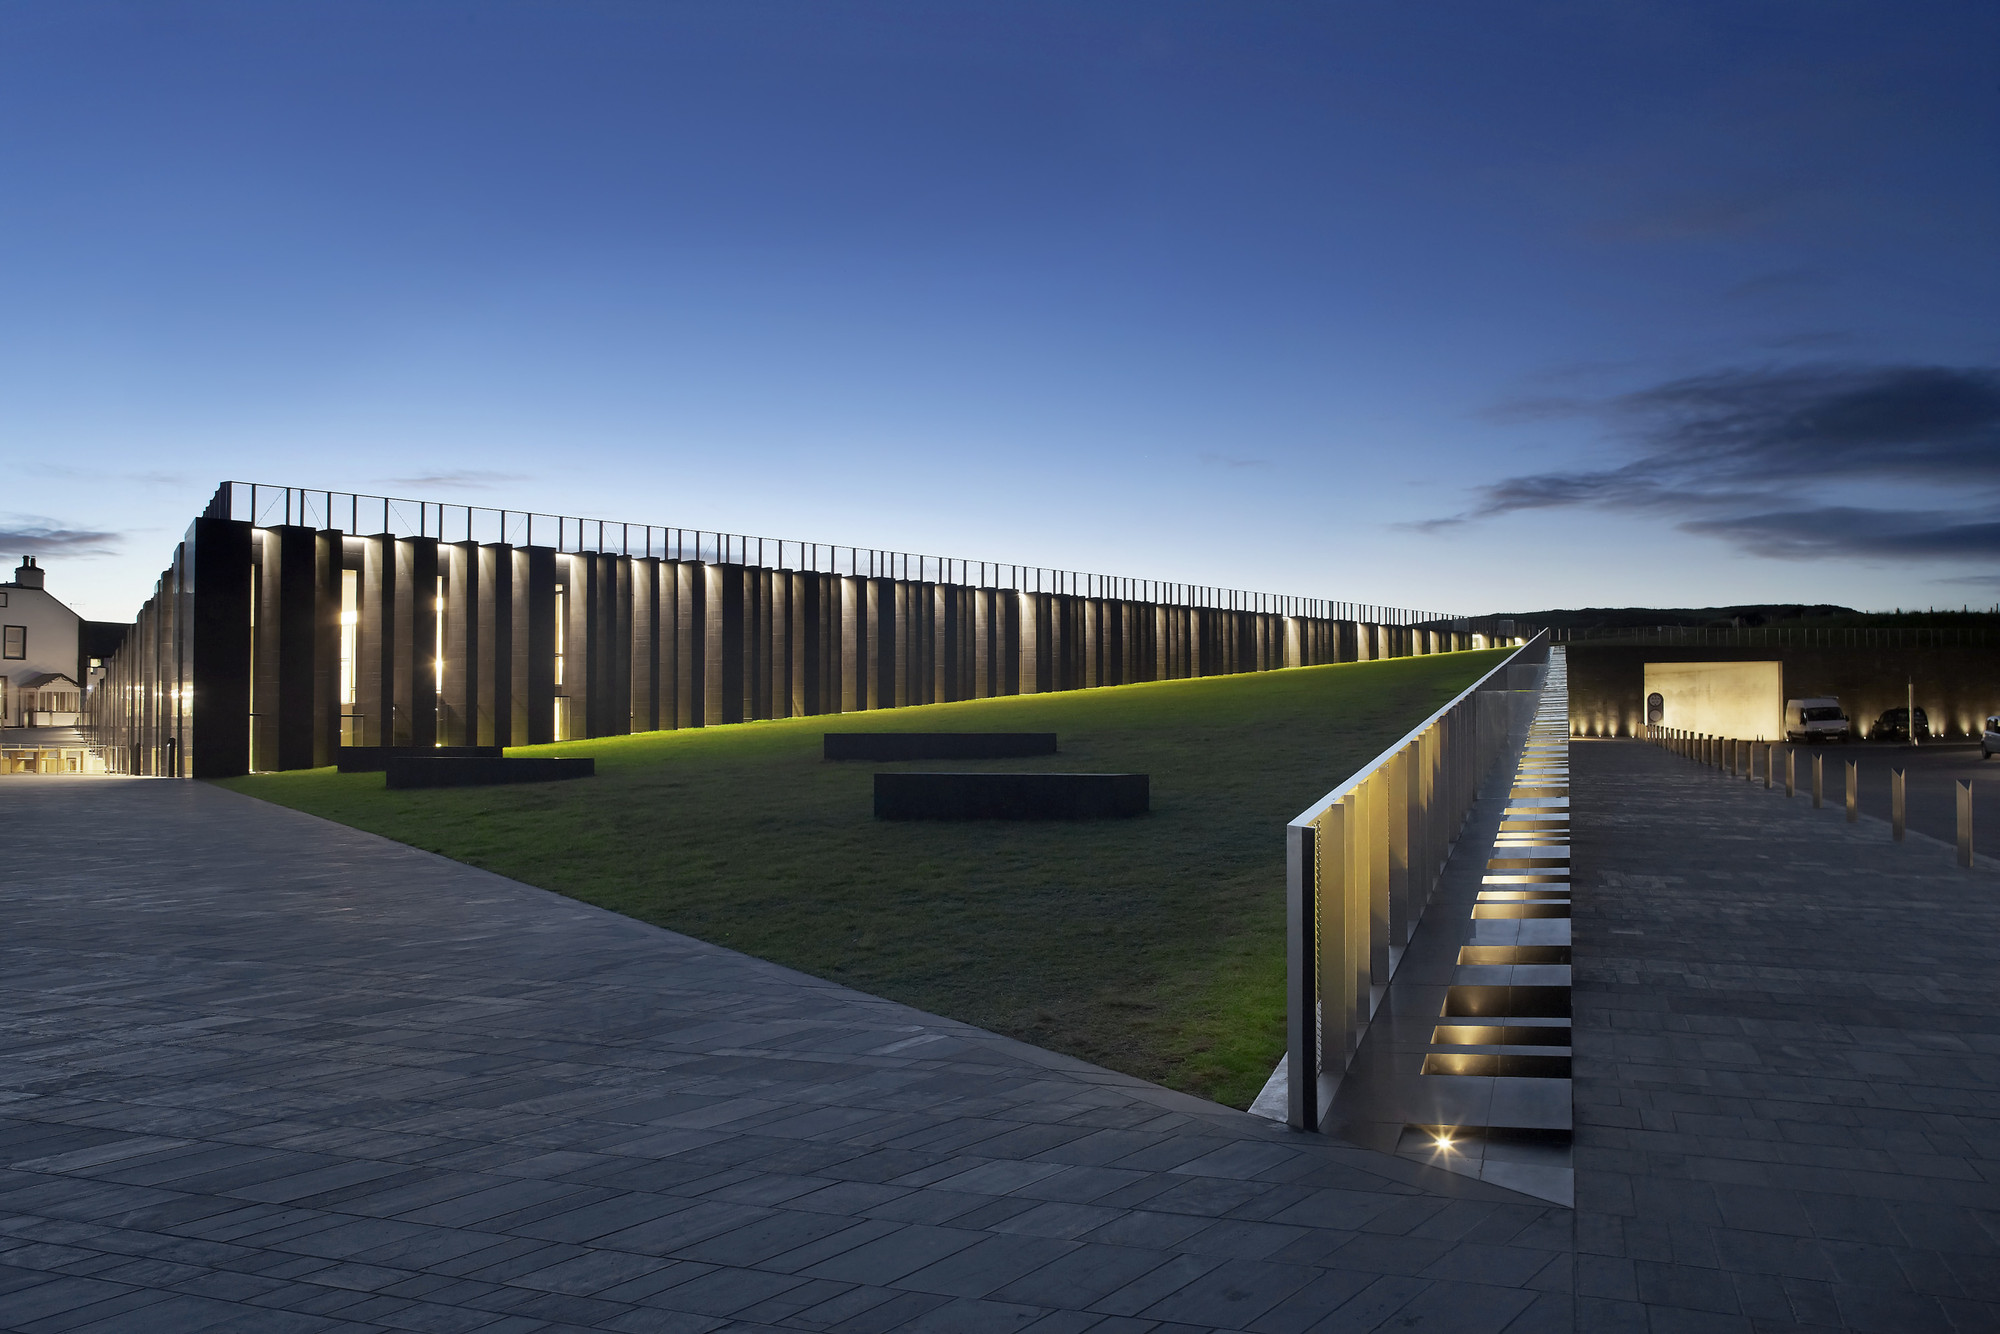 Giants Causeway Visitor Centre / Heneghan & Peng Architects